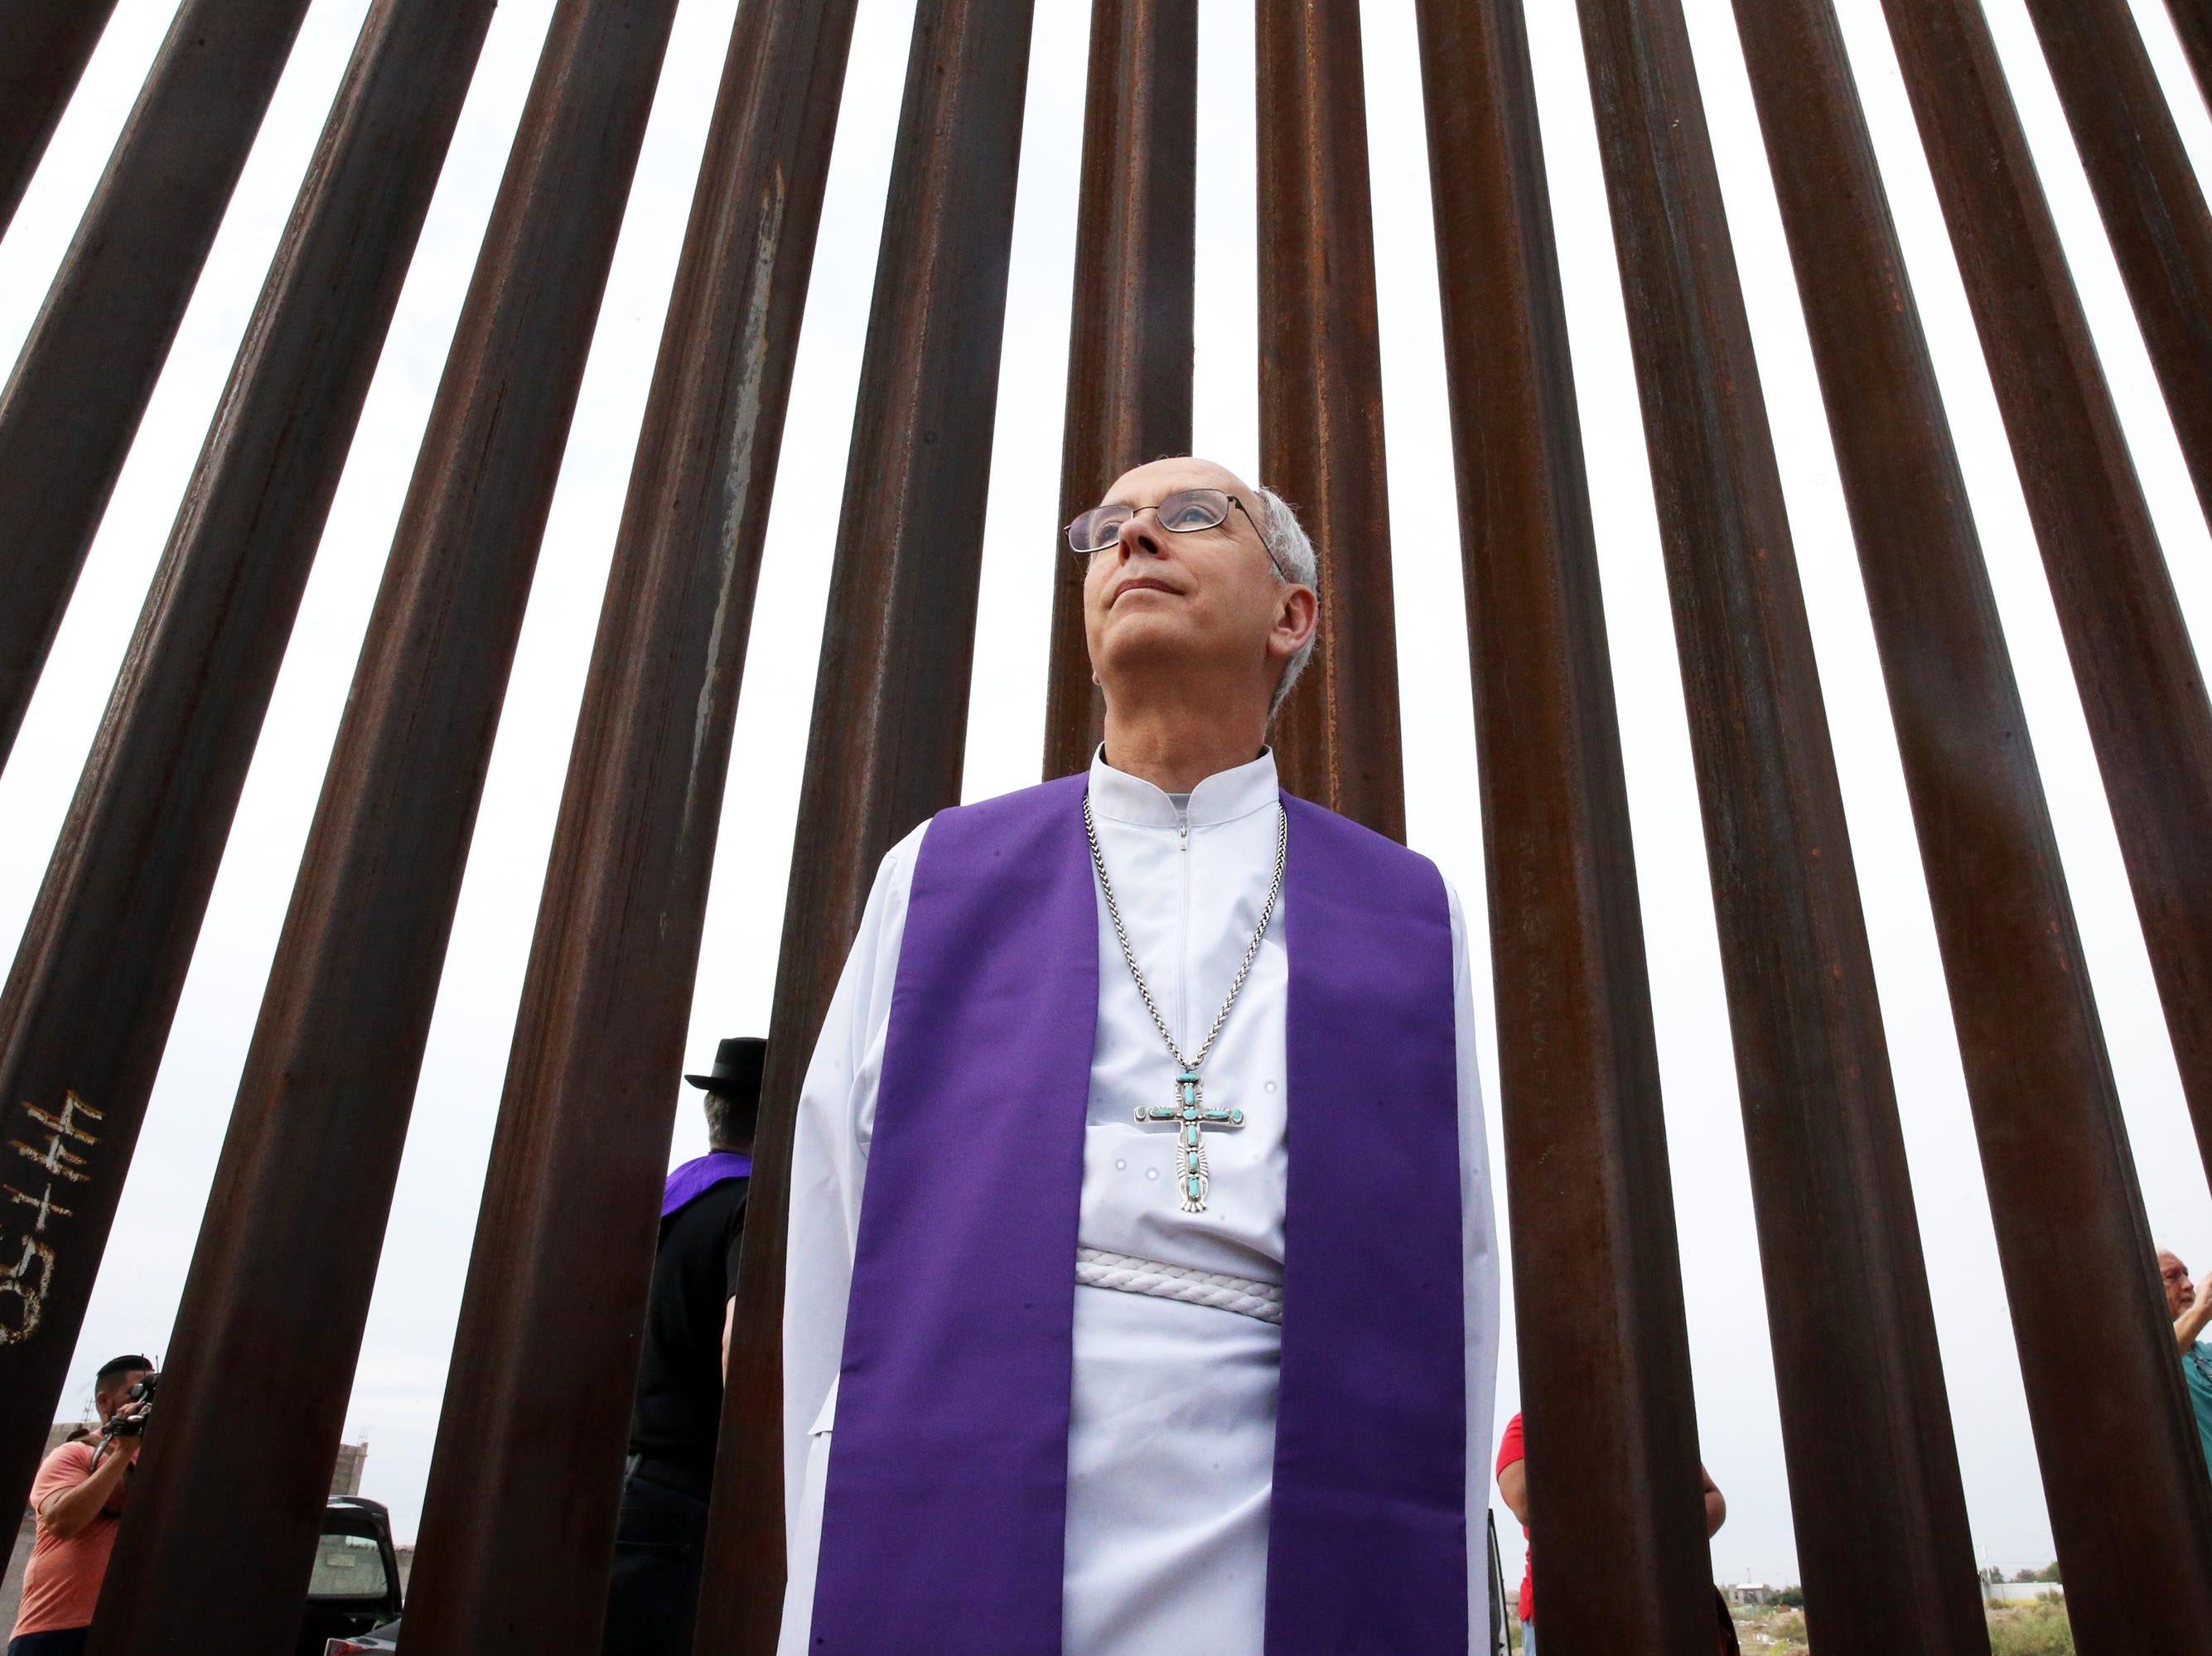 "El Paso Catholic Bishop Mark J. Seitz stands along the border fence at Sunland Park, N.M., during an interfaith gathering of clergy, including many who were visiting from other parts of the country. The clergy members spoke, prayed and visited with people gathered on the Juárez side during a prayer vigil Friday.  Hope Border Institute, a faith-based group focused on defending human rights on both sides of the border, hosted three national delegations to the area. One group, Faith in Public Life, brought 15 Catholic priests, said Camilo Perez Bustillo, director Advocacy and Research for Hope Border Institute. Another was comprised of a network that rose due to immigrant family separations at the border and a third group was called Movimiento de Mujeres y Madres Migrantes, a movement of migrant mothers and women based in New York, Bustillo said. The three groups united under an interfaith framework titled, ""The Cry of the Borders."" The gathering was to protest the idea of indefinite family detention until individual immigration cases are decided, a plan that was announced Thursday by the Trump administration."